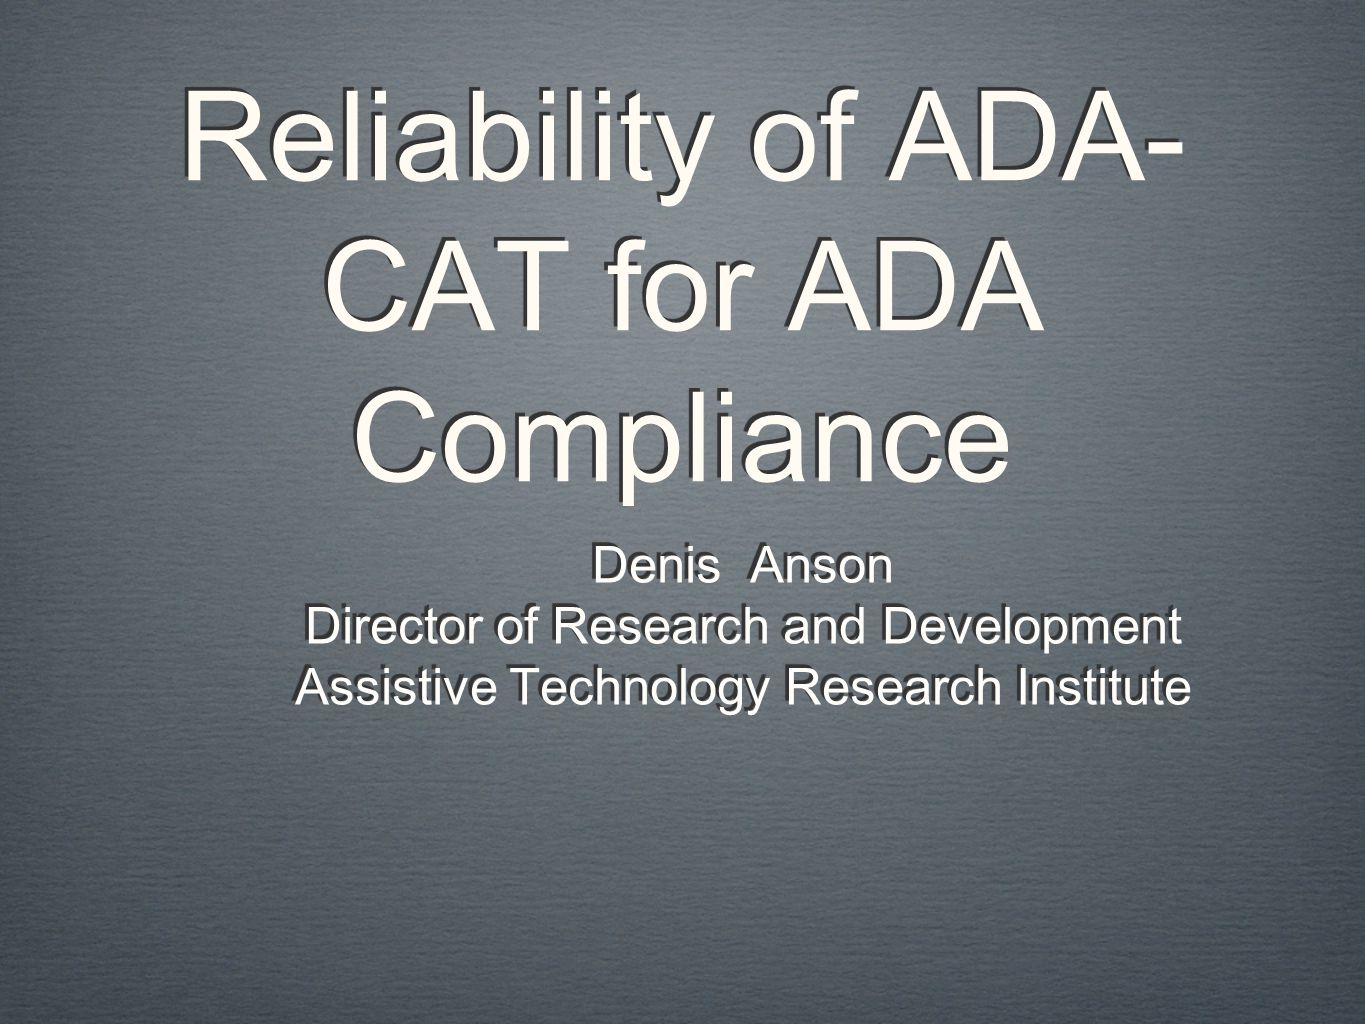 Reliability of ADA- CAT for ADA Compliance Denis Anson Director of Research and Development Assistive Technology Research Institute Denis Anson Director of Research and Development Assistive Technology Research Institute